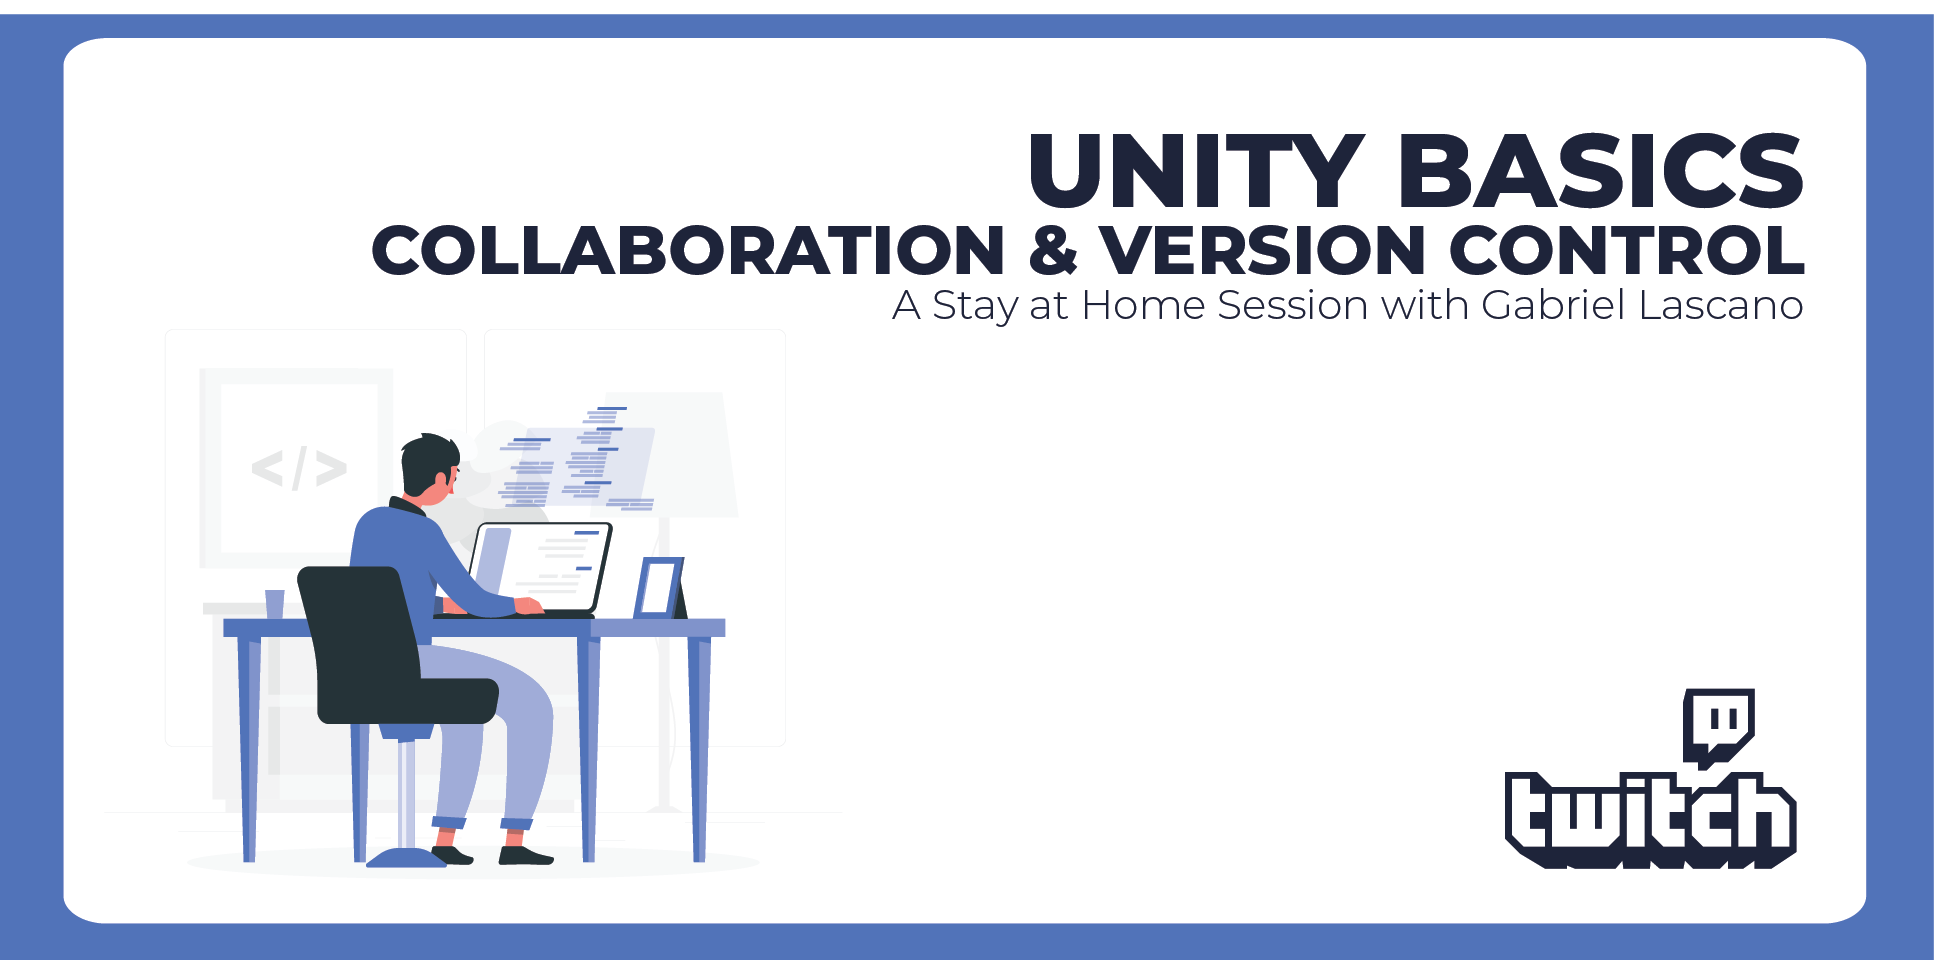 Stay at Home Session - Unity Basics - Collaboration & Version Control